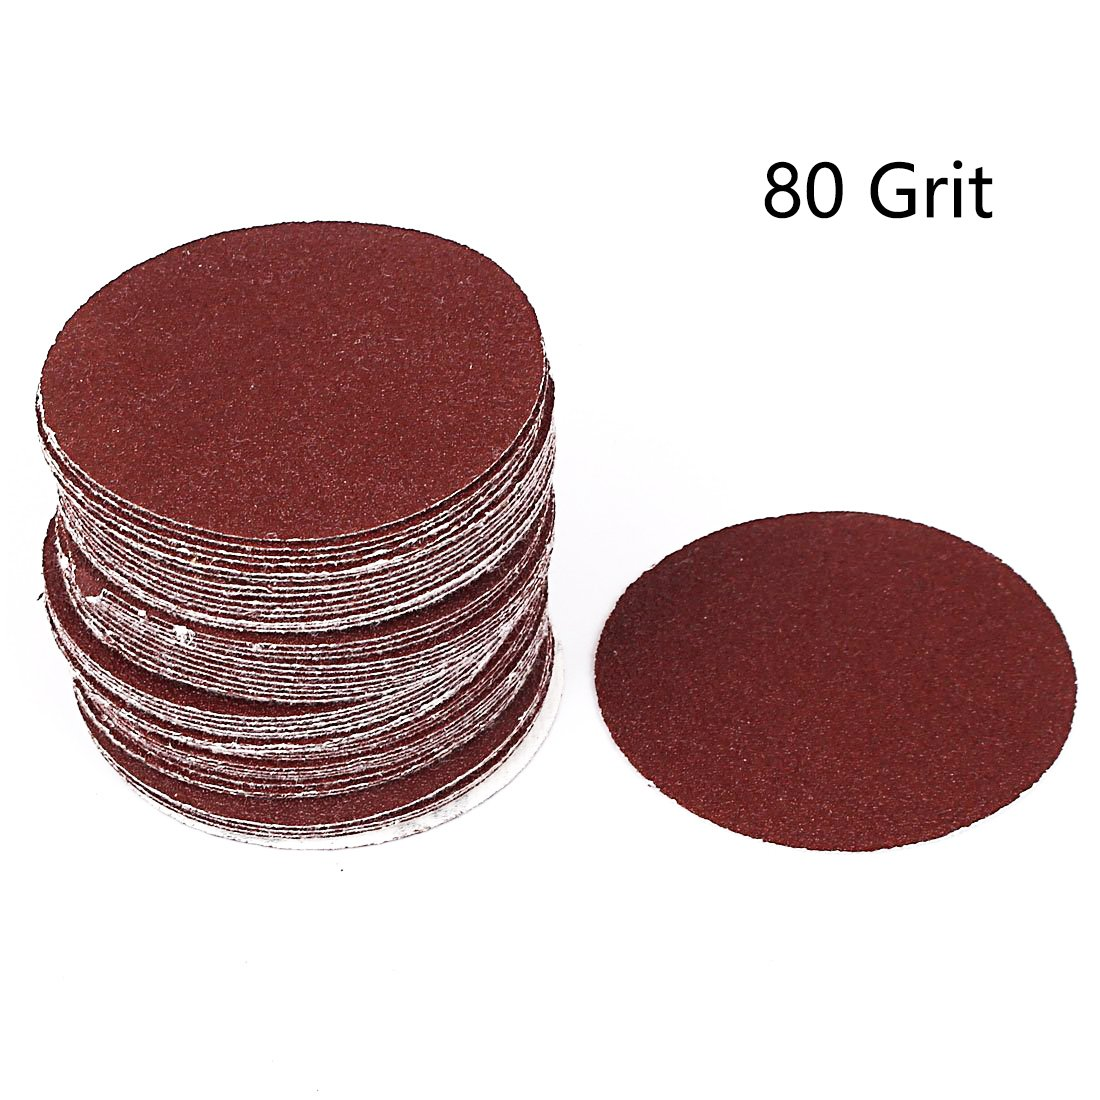 Antrader 100 PCS 3-Inch 80 Grit NO-Hole PSA Aluminum Oxide Sanding Disc Hook and Loop Sandpaper for Drill Grinder Rotary Tools